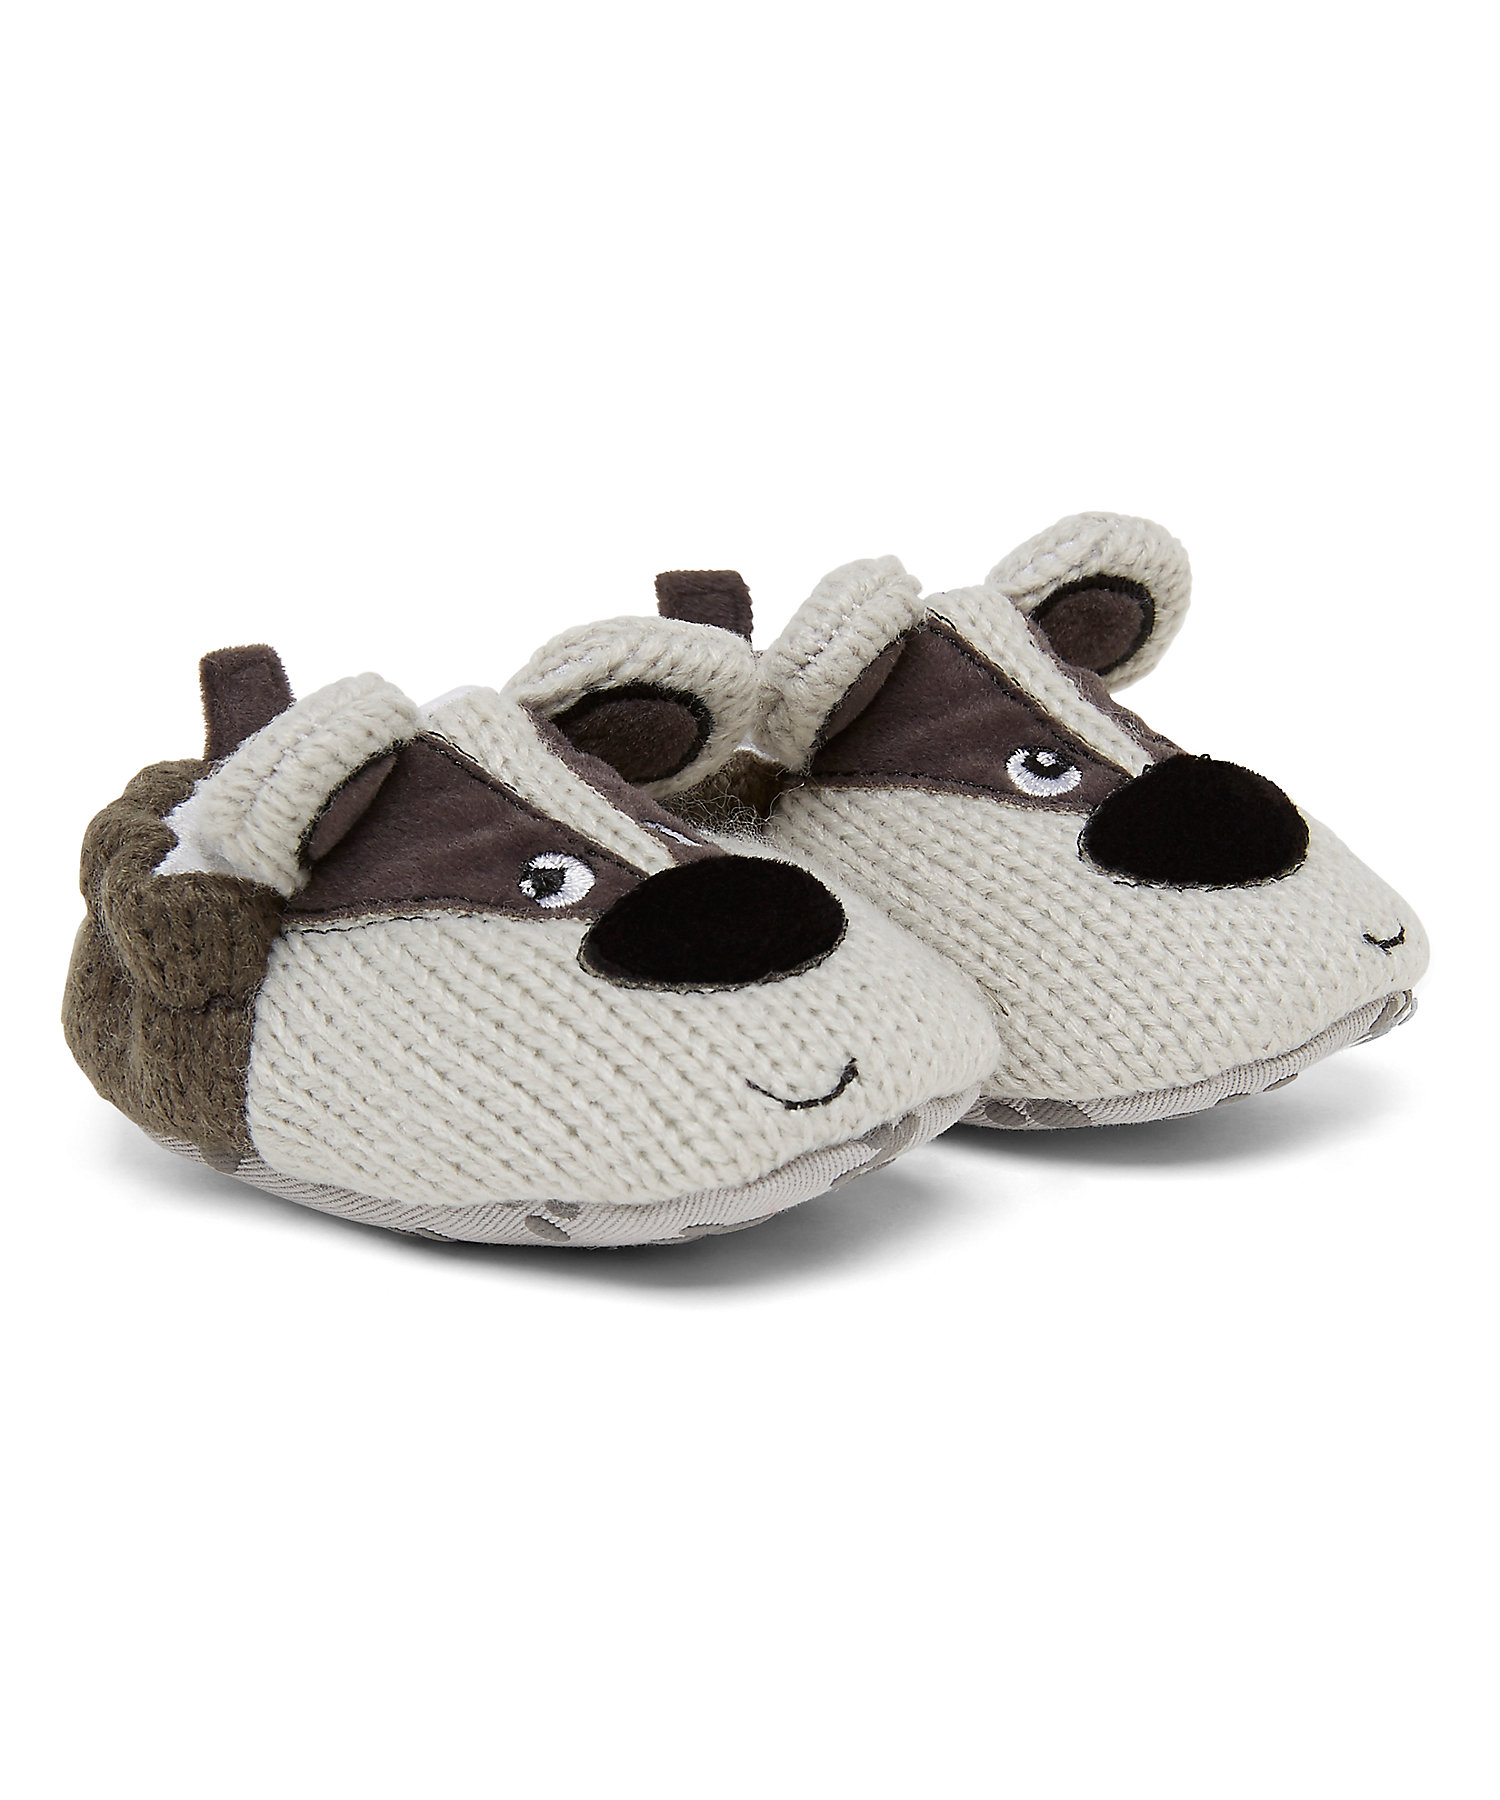 Mothercare | Boys Booties 3D Ear Details - Grey